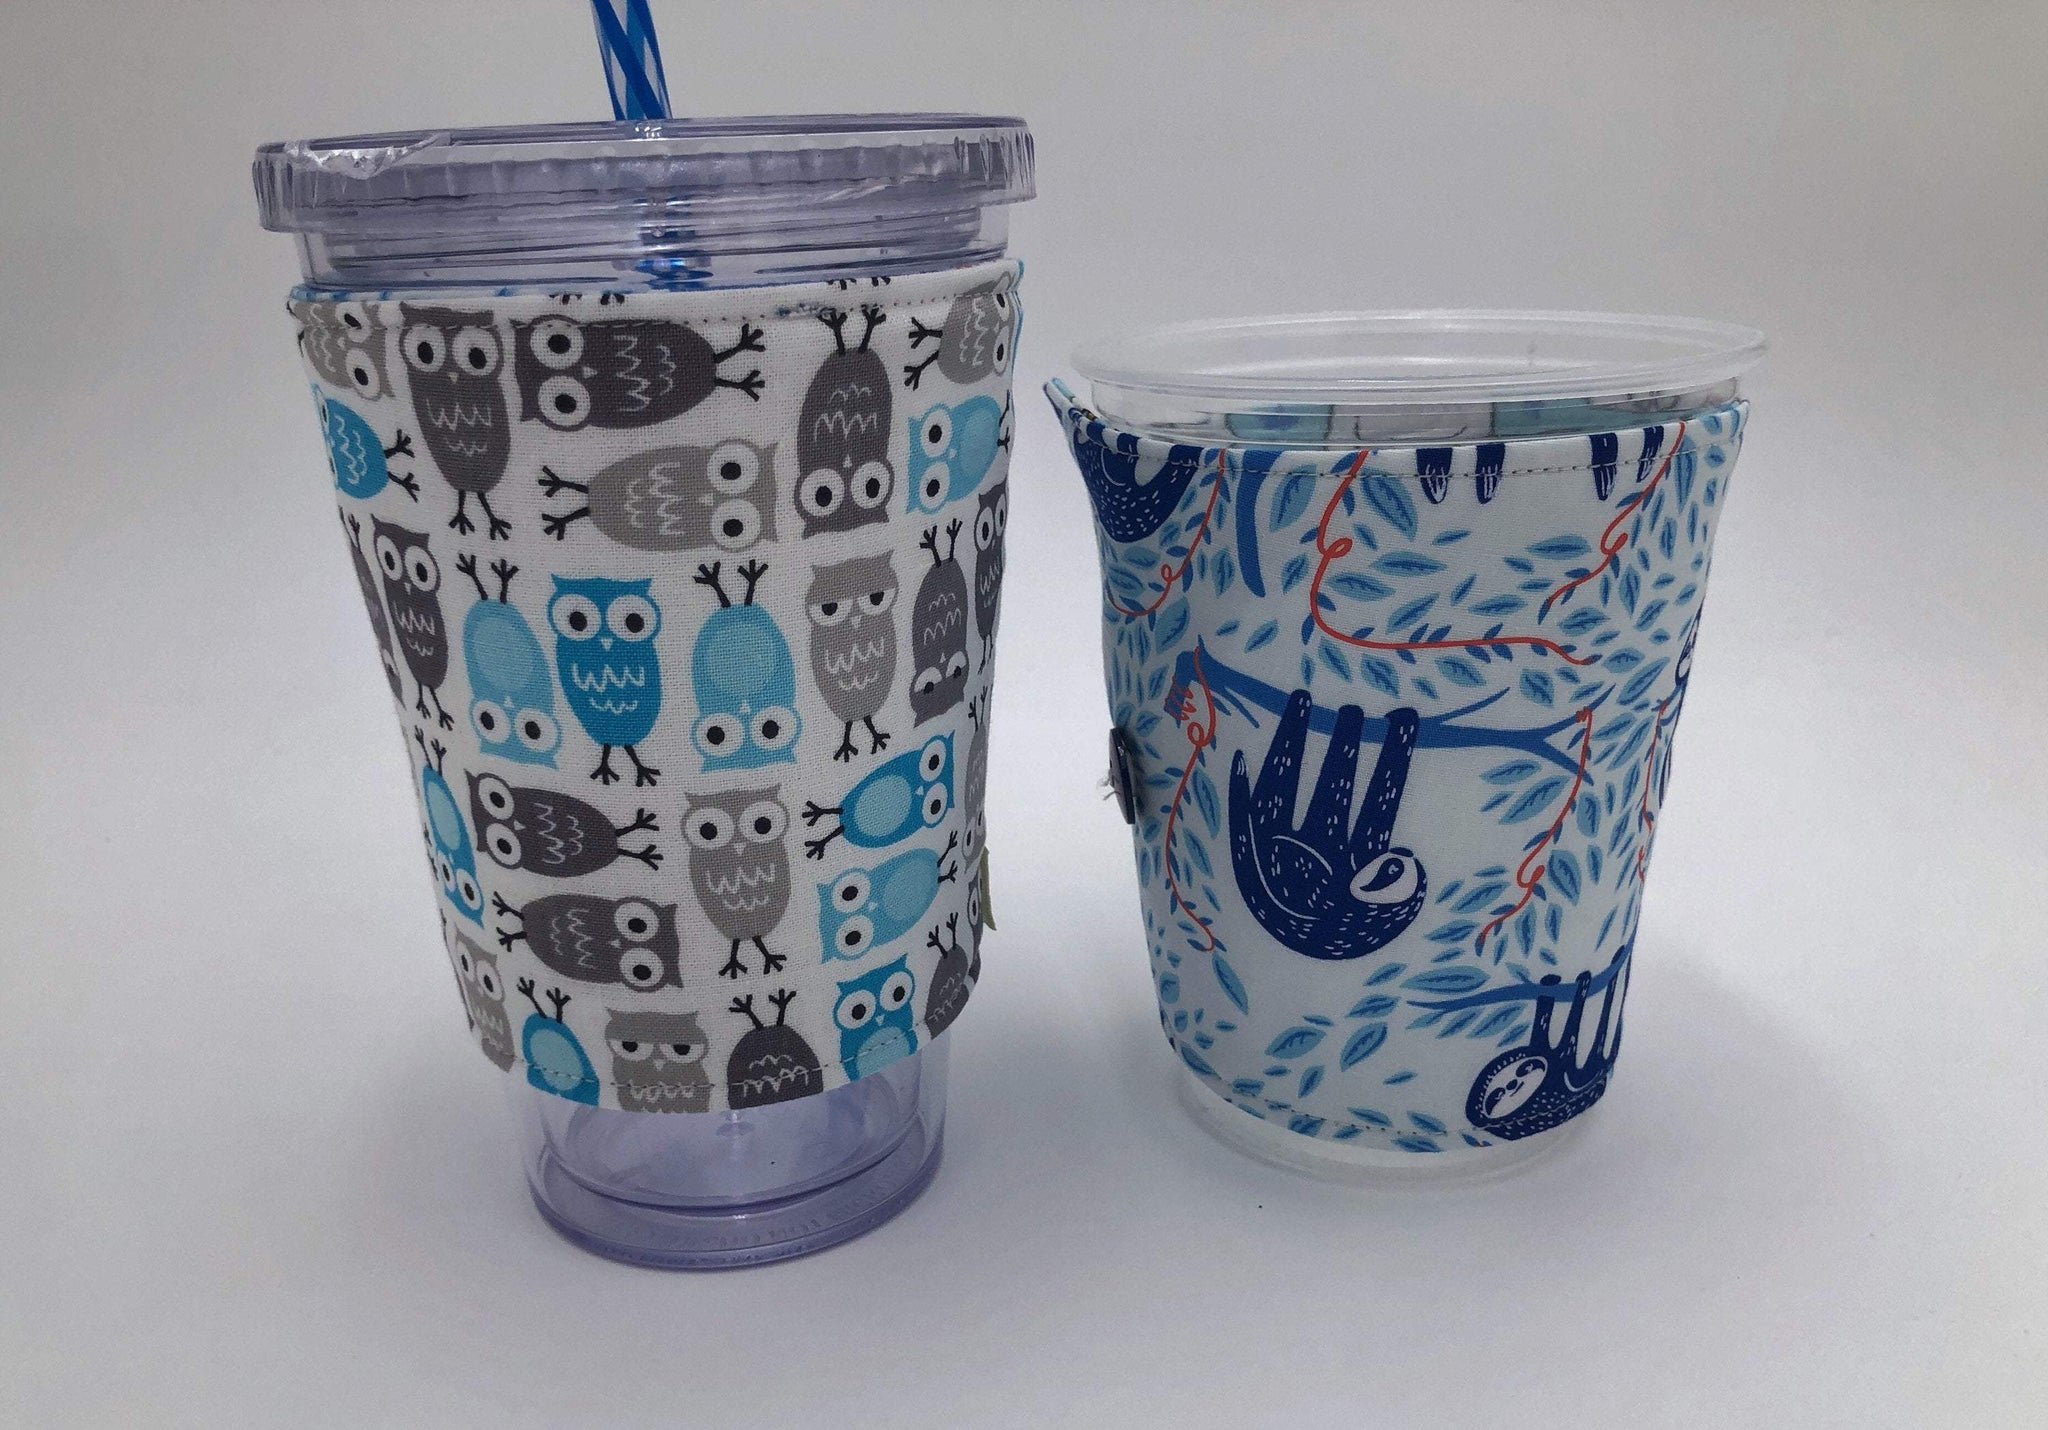 Blue Sloth Iced Coffee Cozy, Gray Owls Insulated Coffee Sleeve, Reversible Drink Cozy - EcoHip Custom Designs